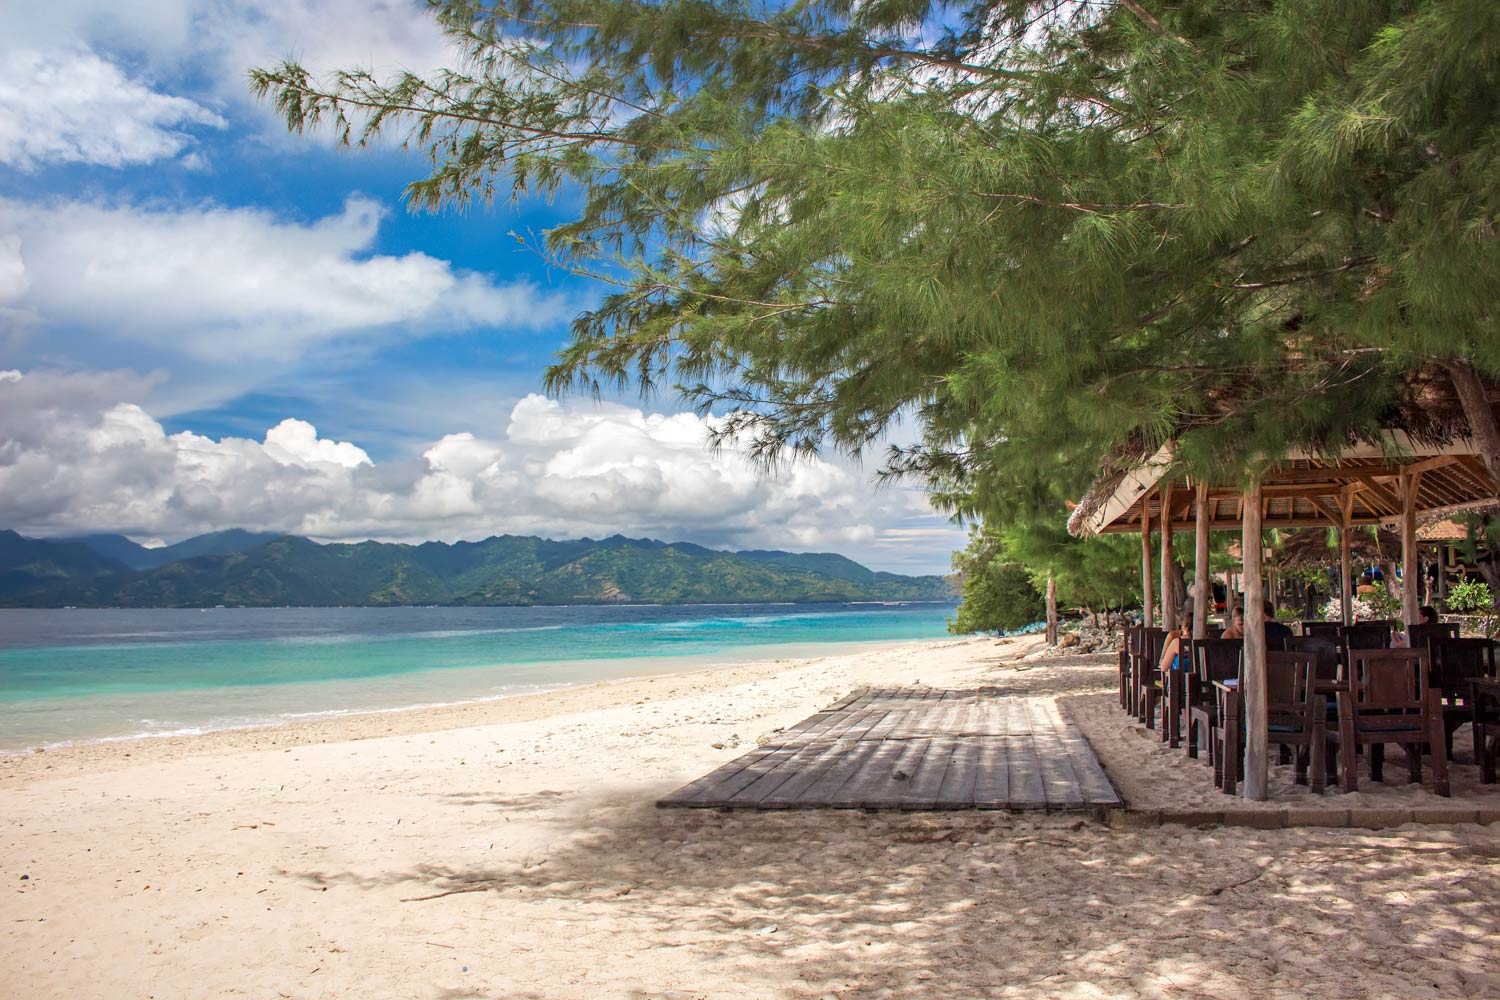 Beach-and-restaurant-Gili-Meno.jpg